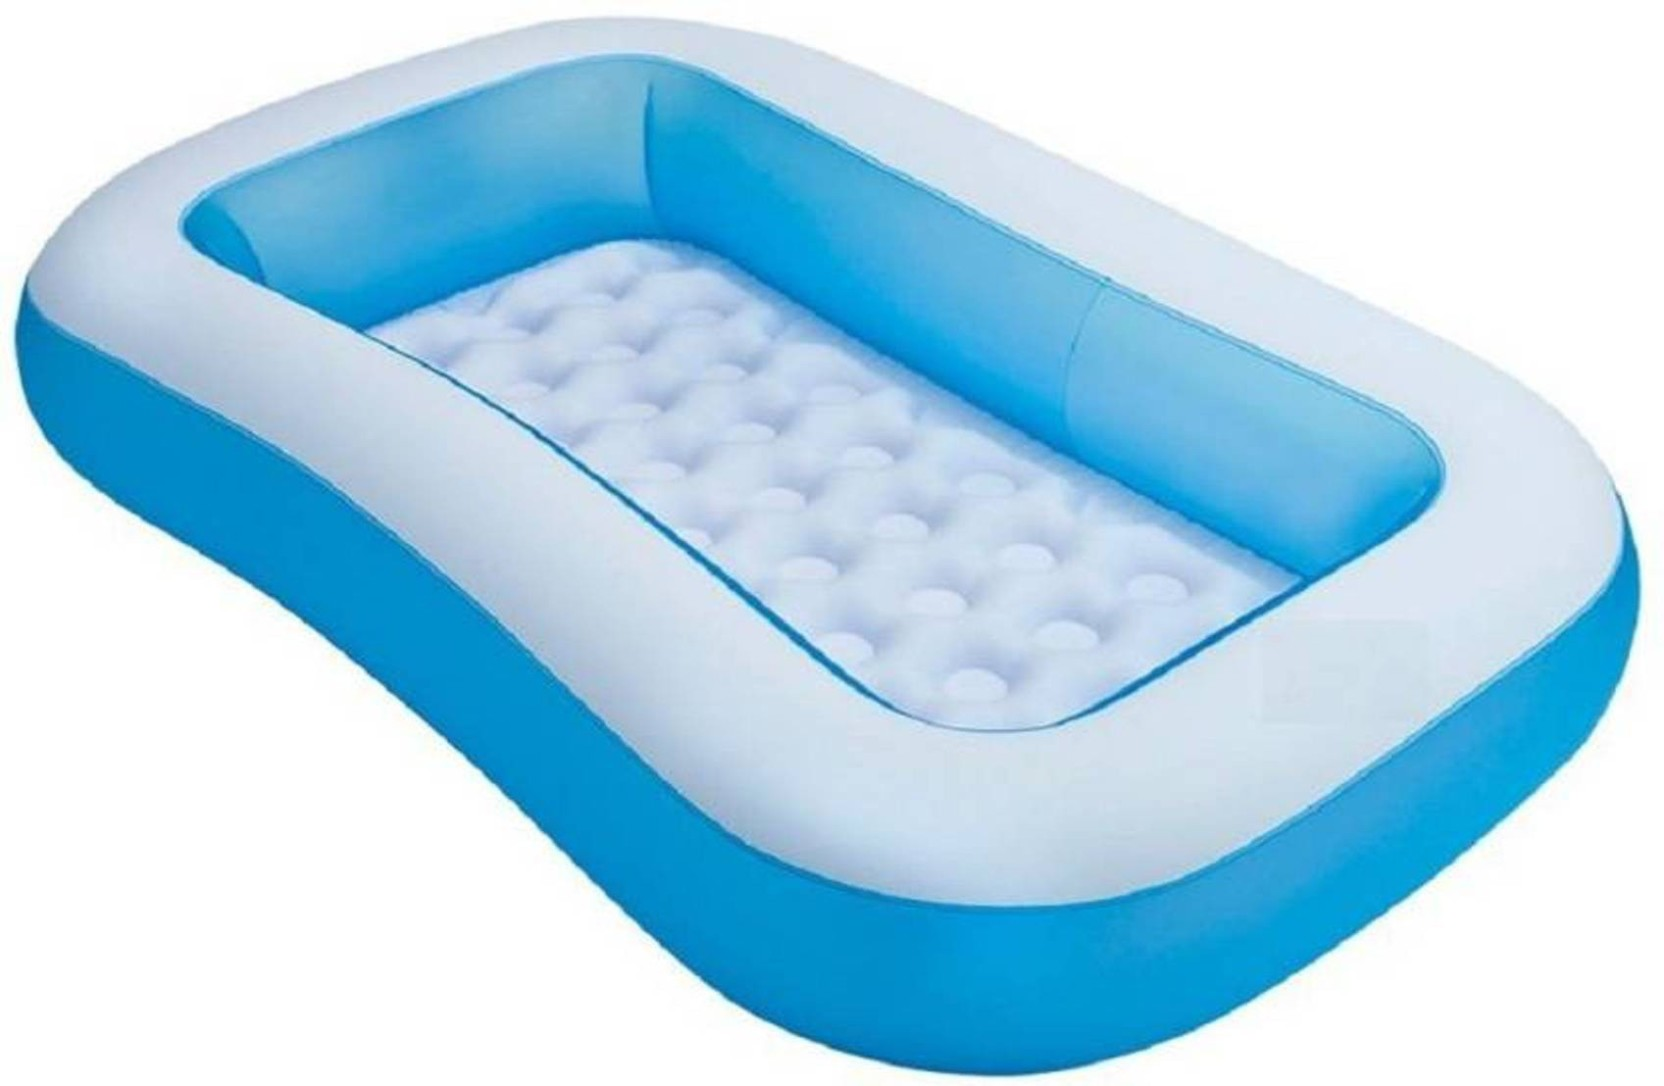 Bestway Inflatable 5 Feet Rectangular Pool Tub Baby Bath Seat By ...